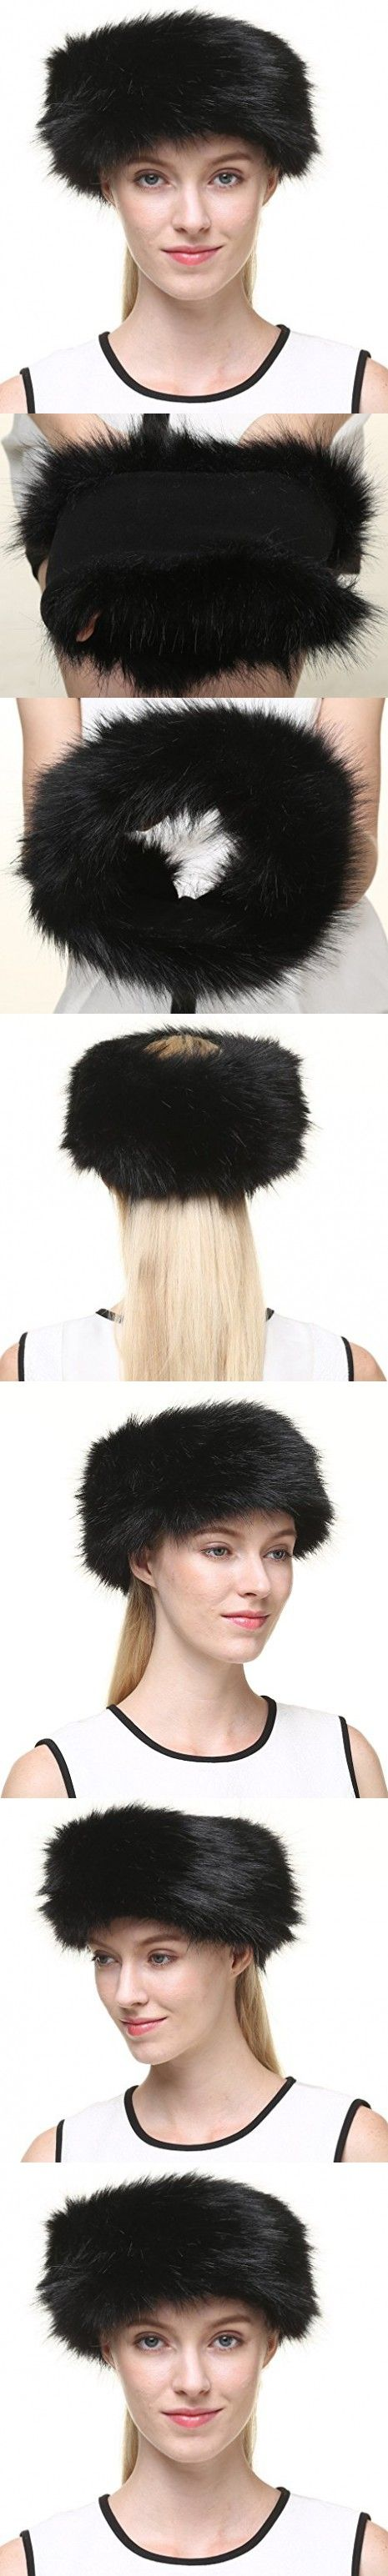 Vogueearth Women's Winter Earwarmer Earmuff Ski Hat Headband Faux-Fox Fur Black